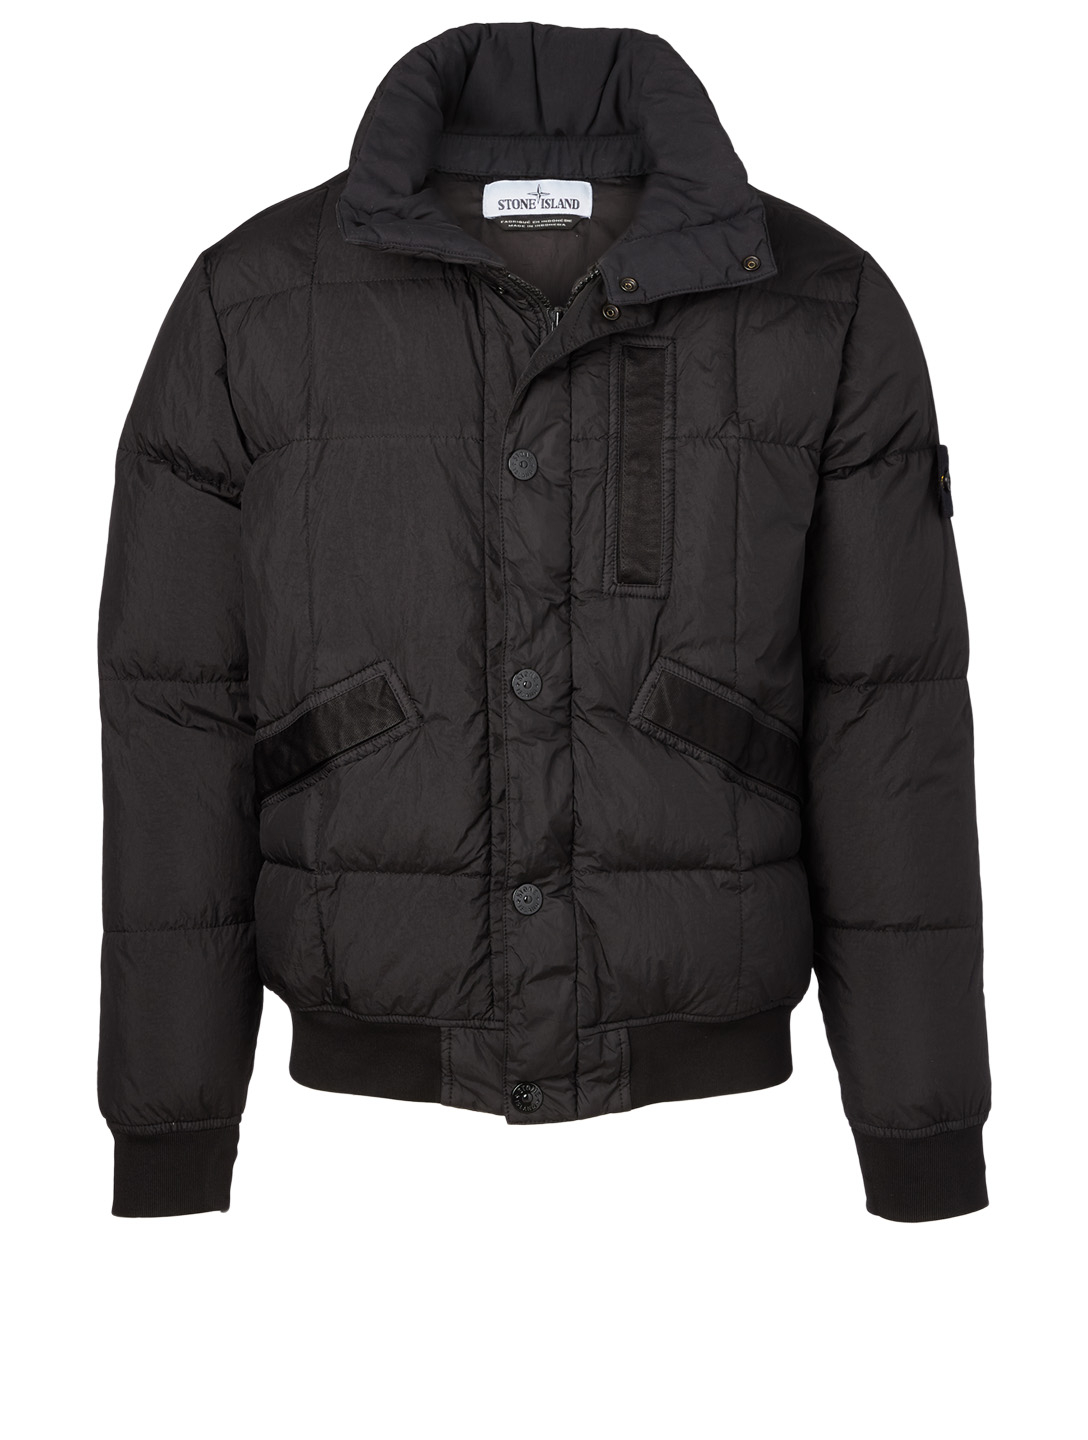 STONE ISLAND Garment Dyed Nylon Down Jacket Men's Black